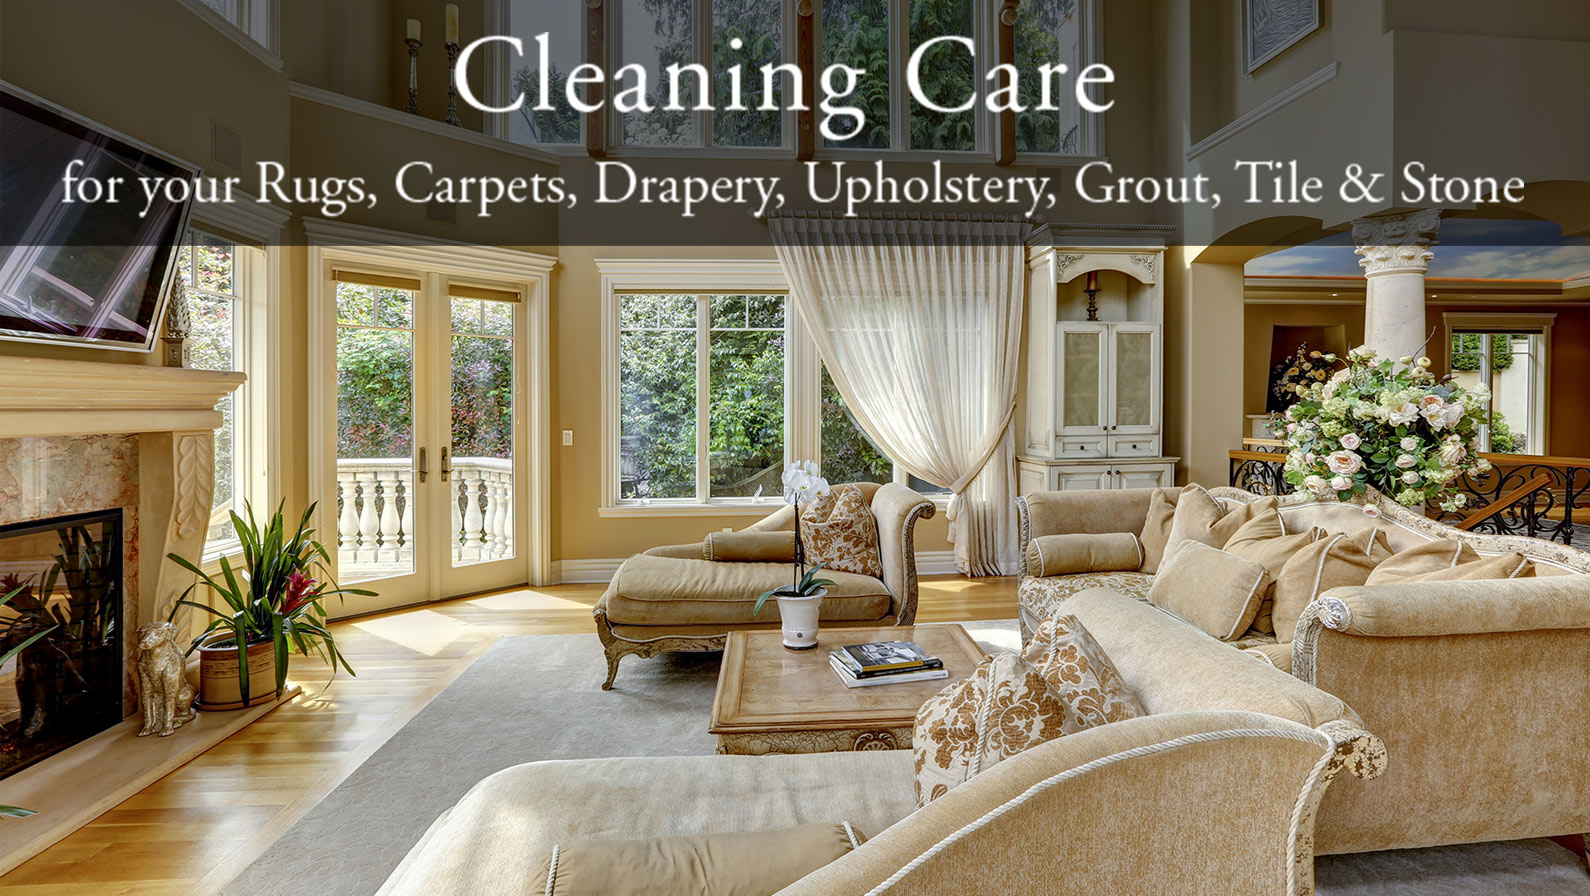 Triple S Carpet & Drapery Cleaners